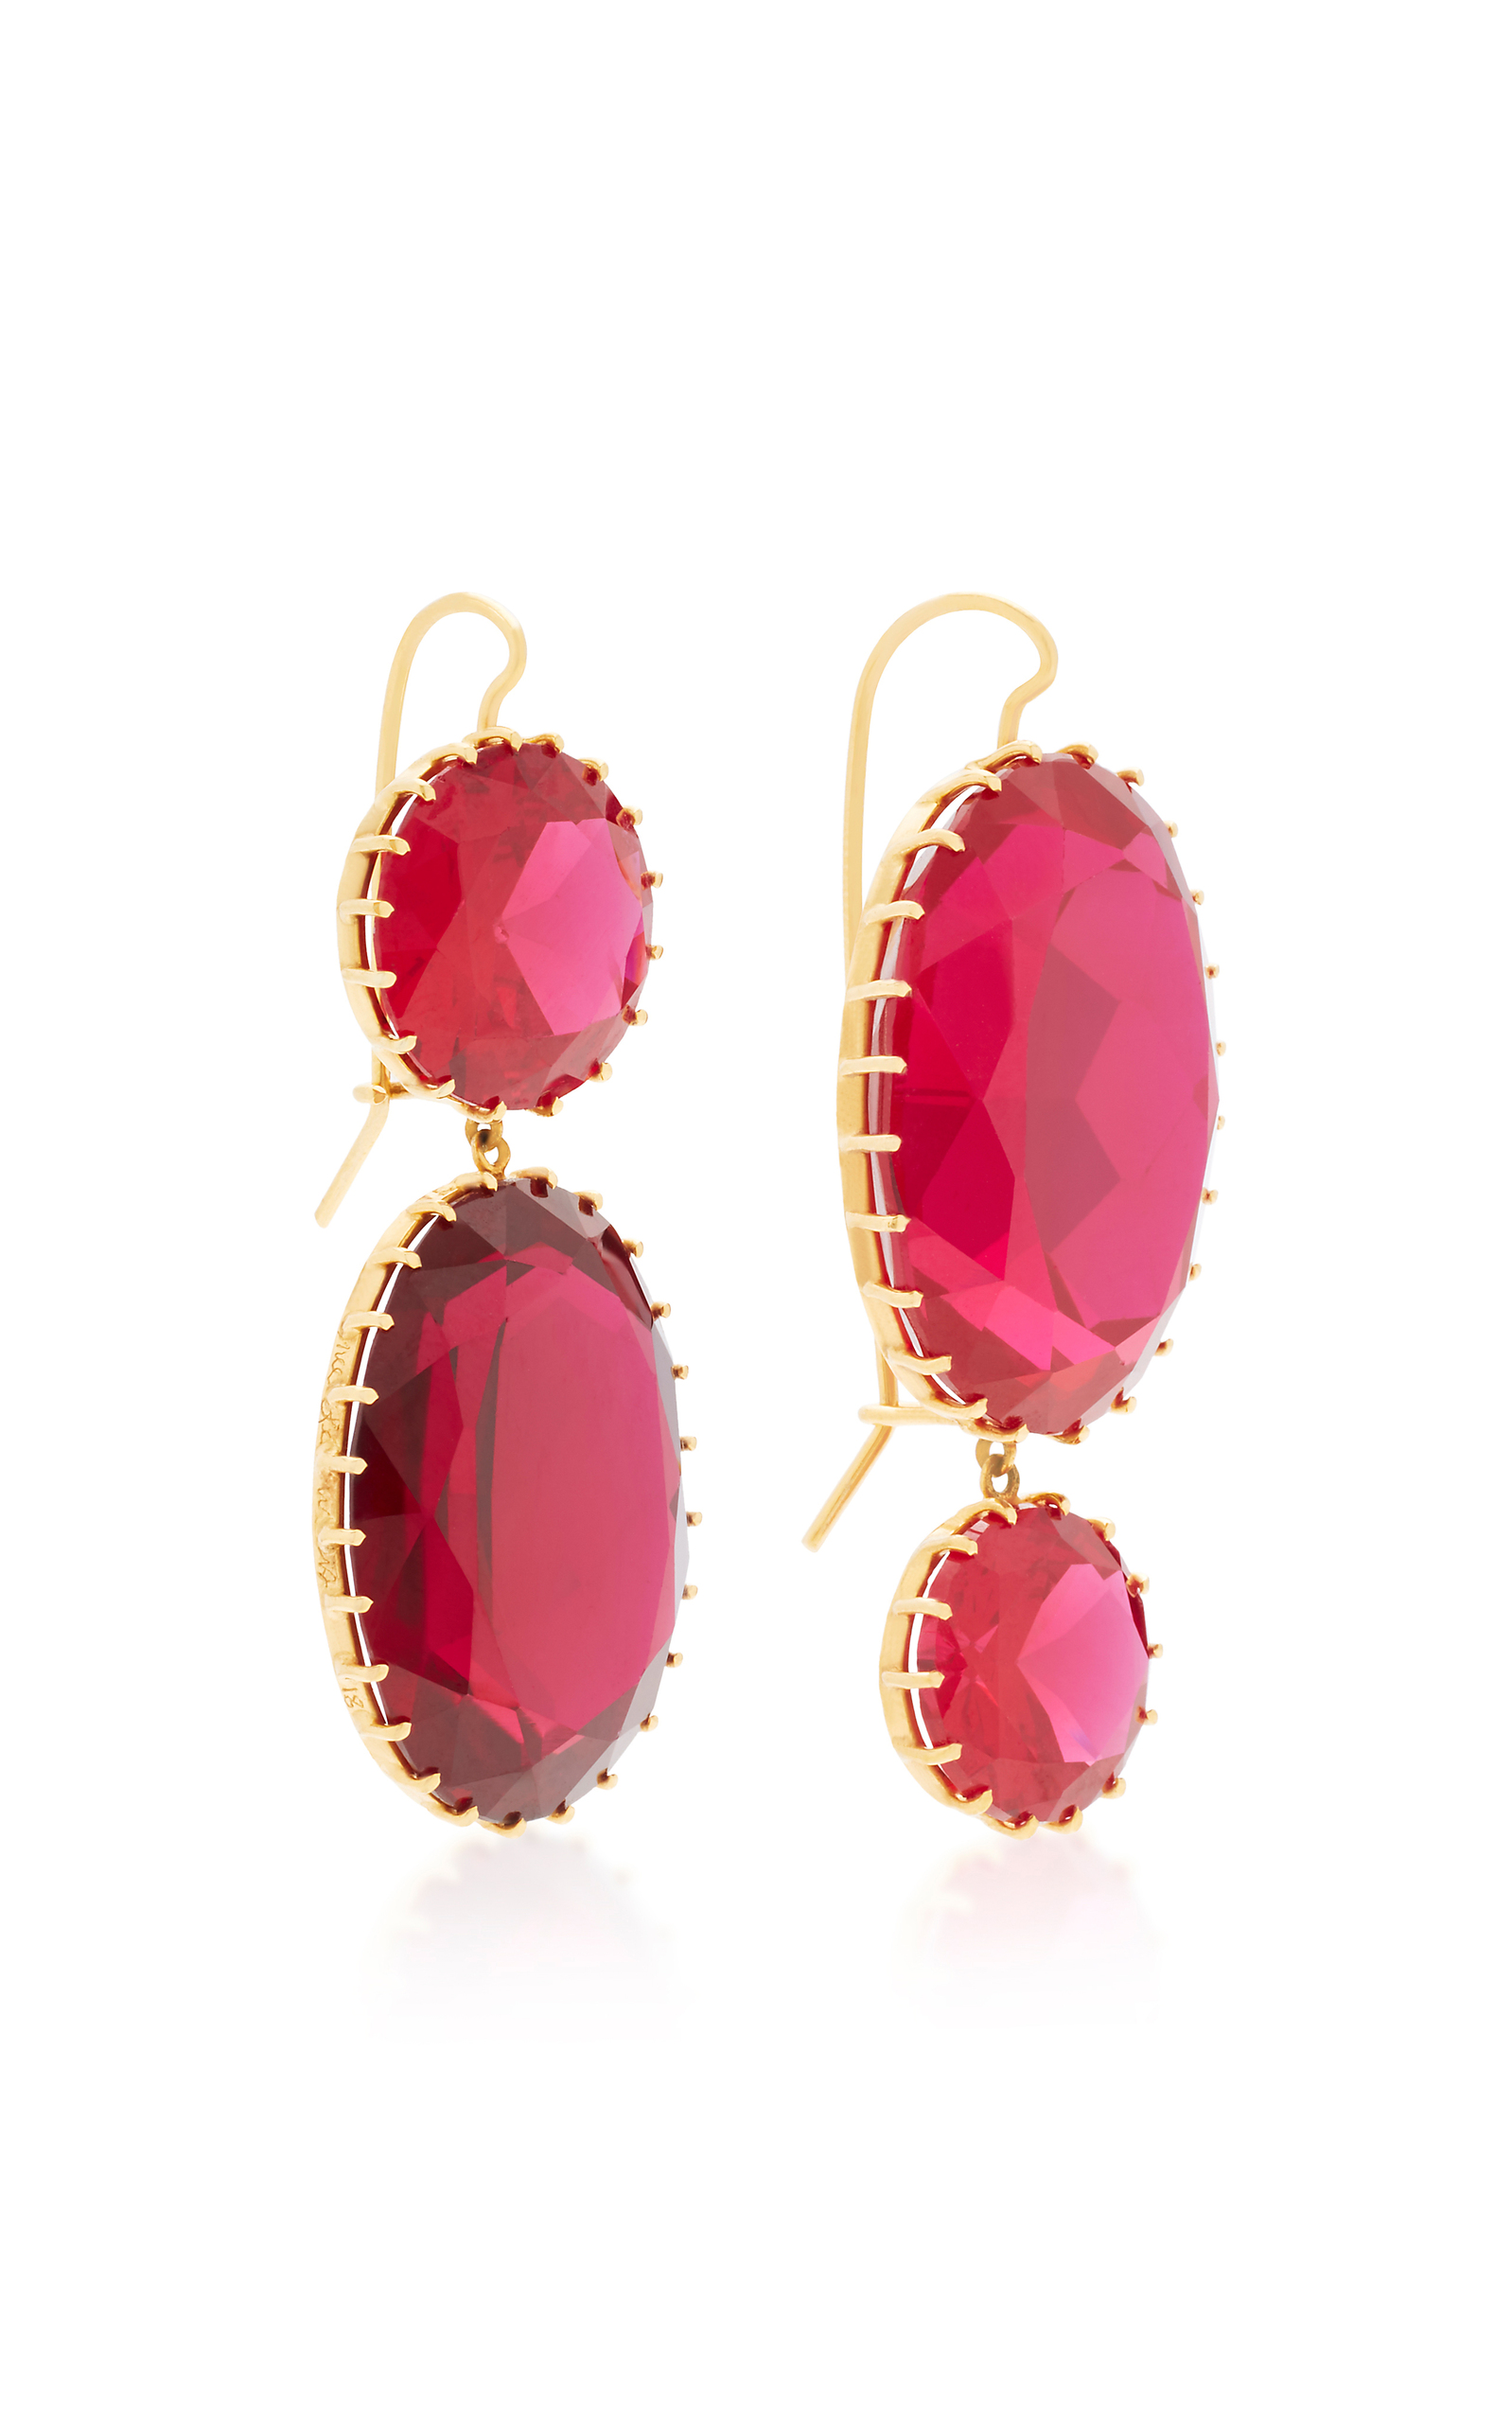 jewellery ruby with diamonds gold and ct in itm silver sterling earrings natural